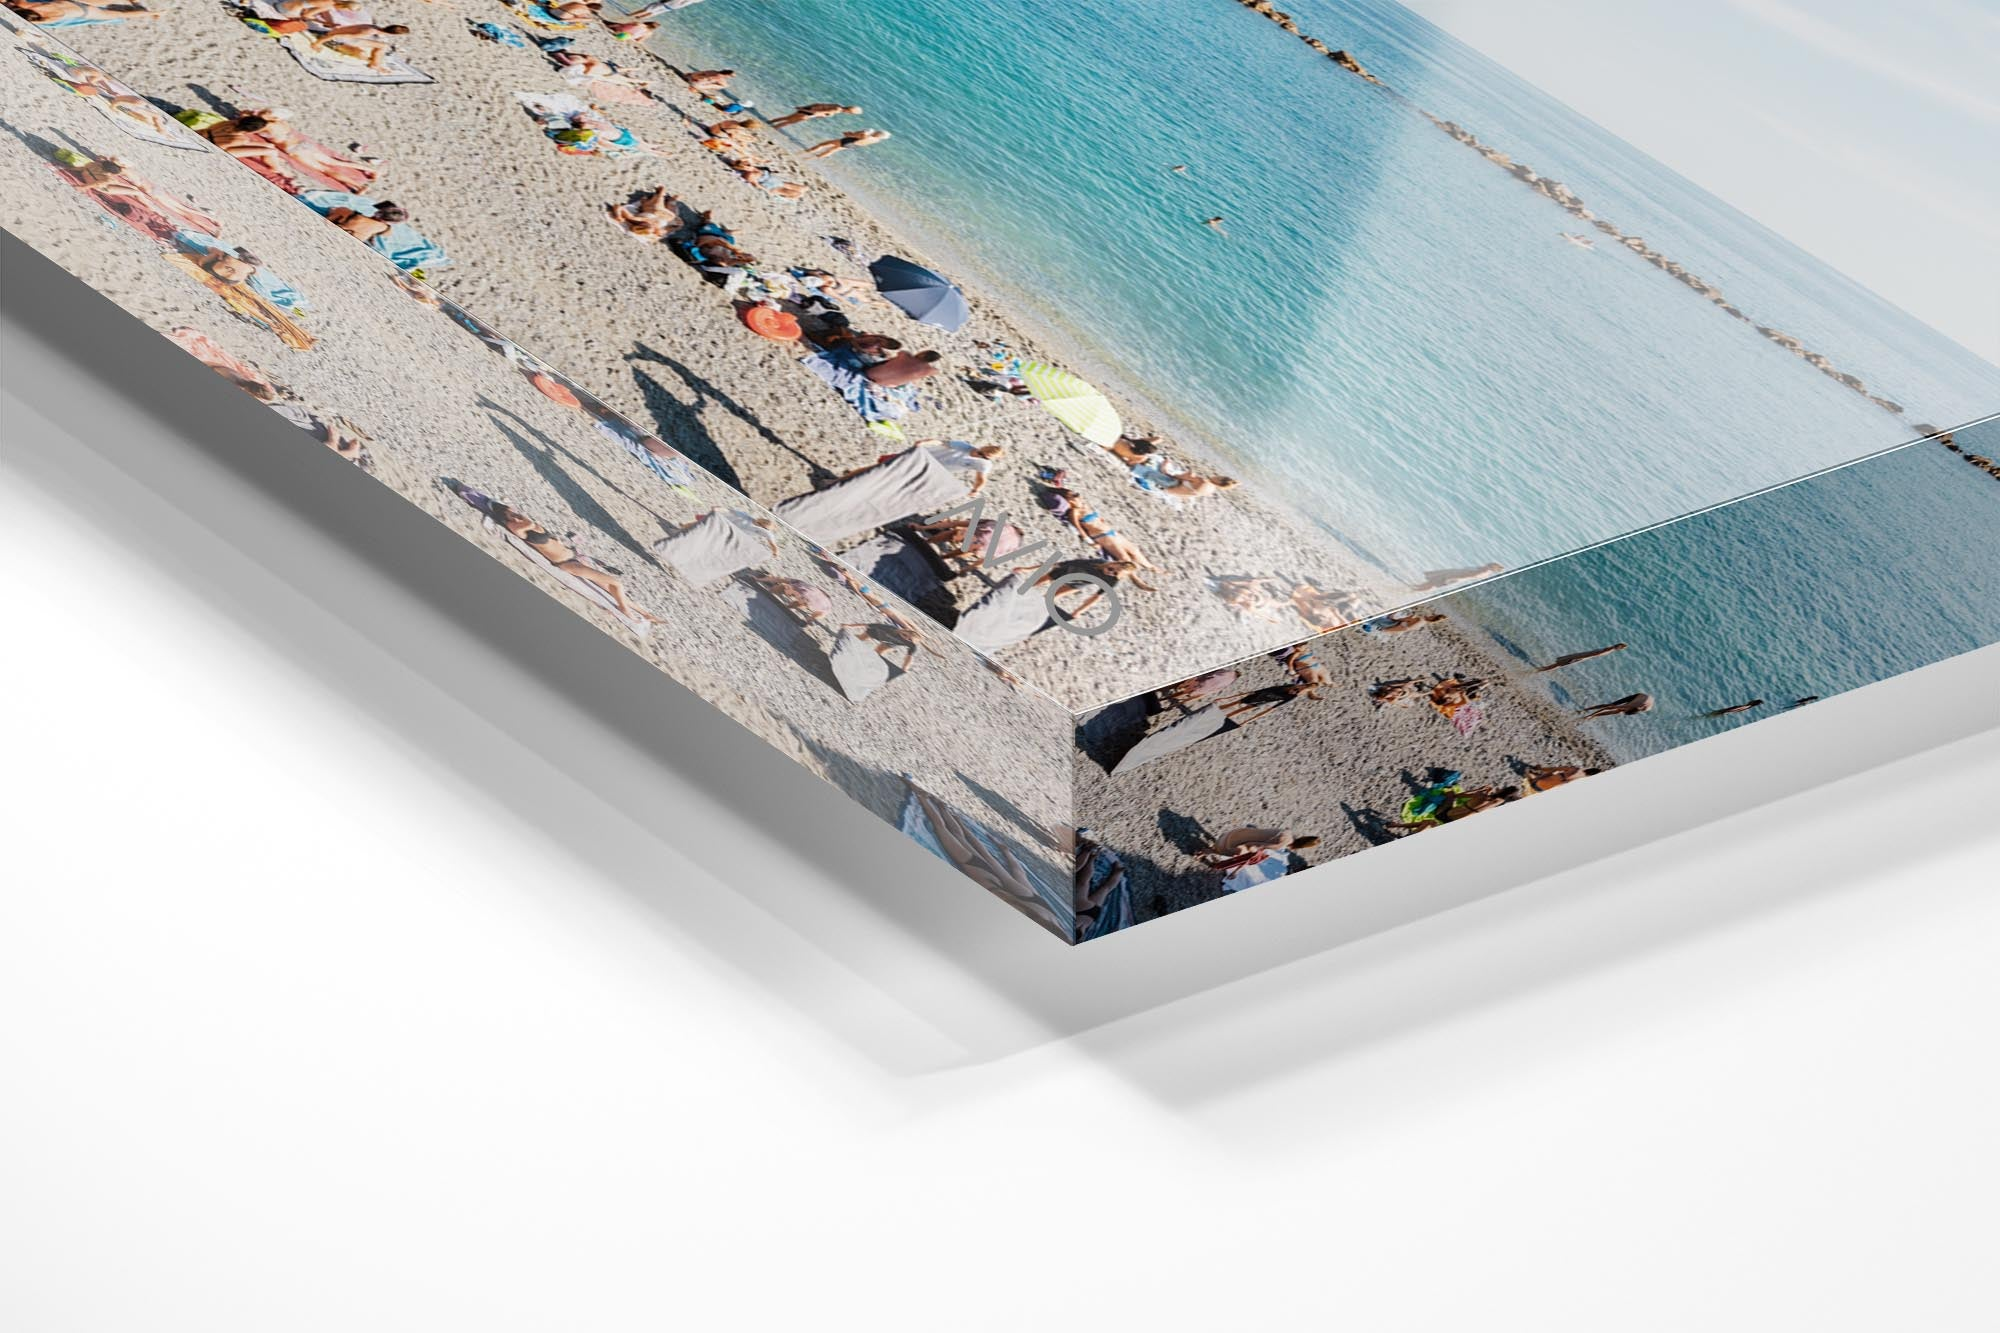 Lots of people lying on old town Monterosso beach in Italy in an acrylic/perspex frame